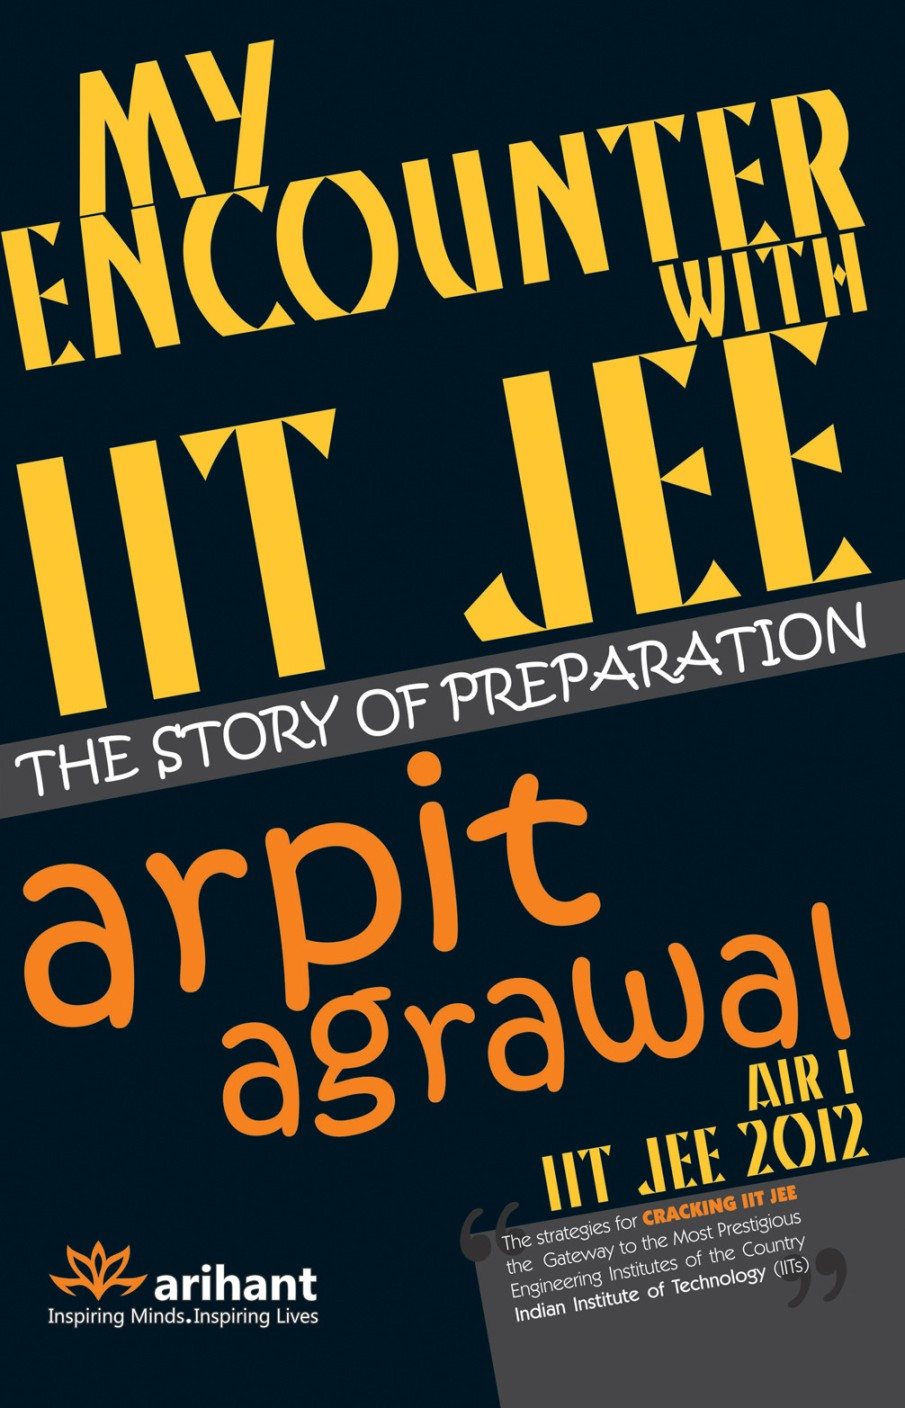 My Encounter With IIT JEE: The Story Of Preparation (2012